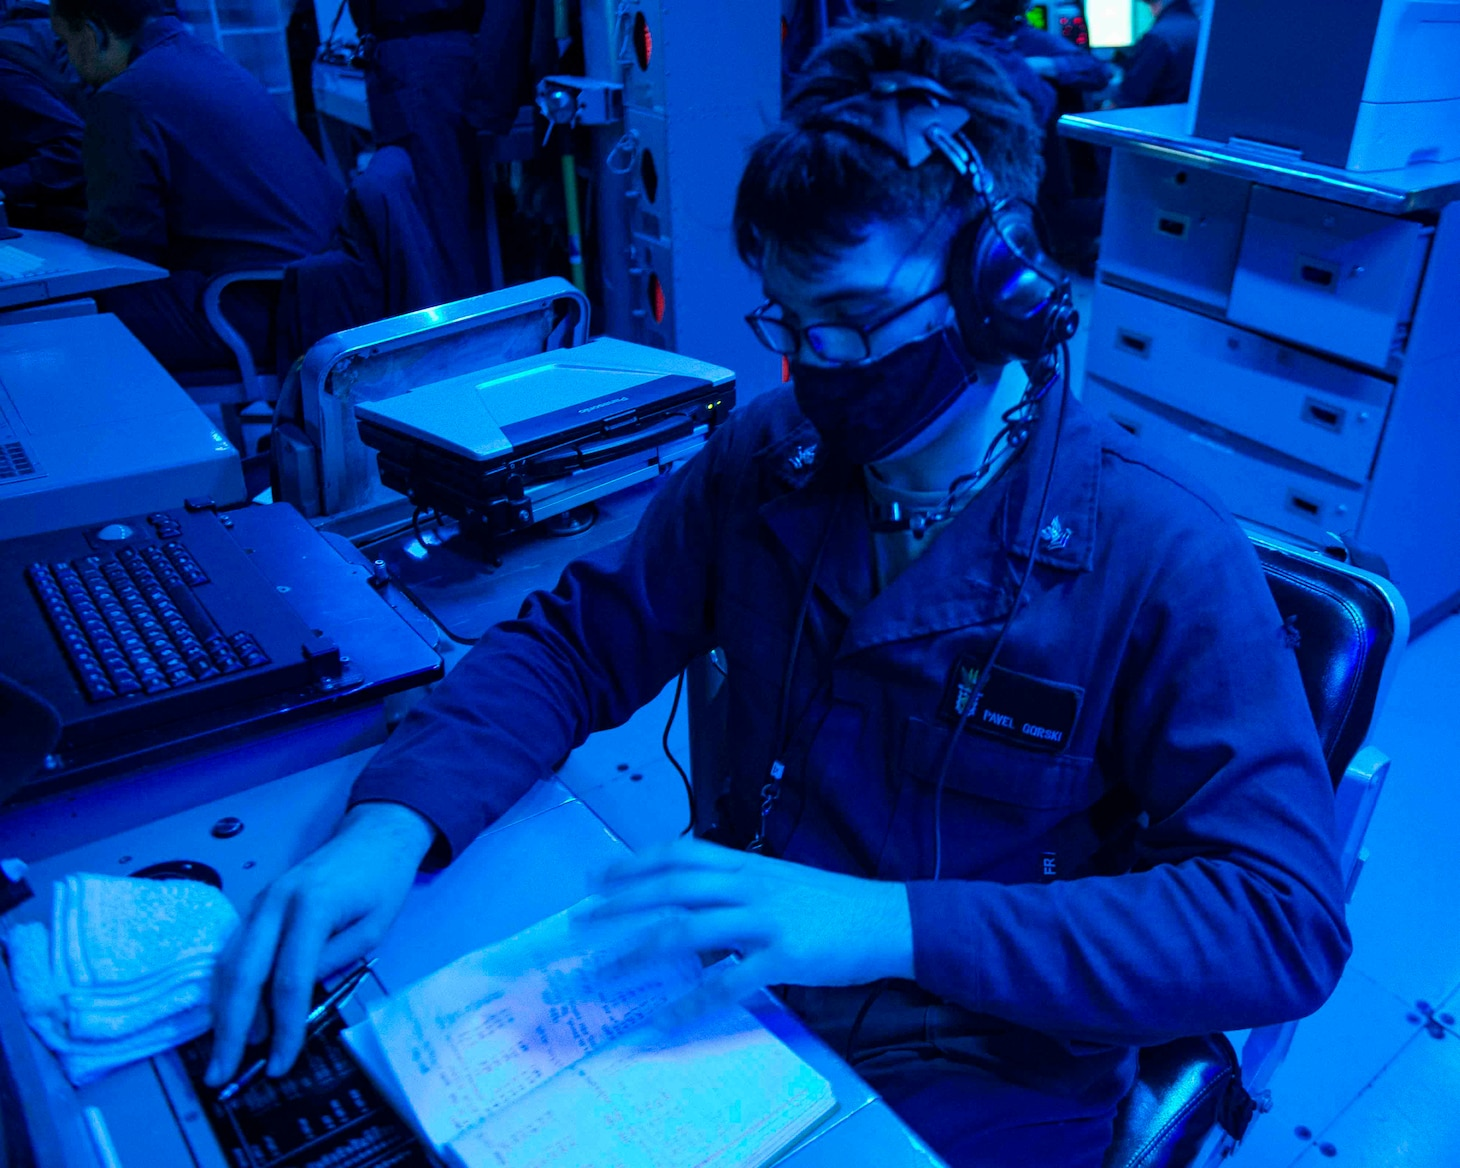 TAIWAN STRAIT (Feb. 23, 2020) -- Fire Controlman (Aeigis) 2nd Class Pavel Gorski, from St. Petersburg, Fla. writes in a watch log aboard the Arleigh Burke-class guided-missile destroyer USS Curtis Wilbur (DDG 54). Curtis Wilbur is assigned to Destroyer Squadron (DESRON) 15, the Navy's largest forward-deployed DESRON and the U.S. 7th Fleet's principal surface force.